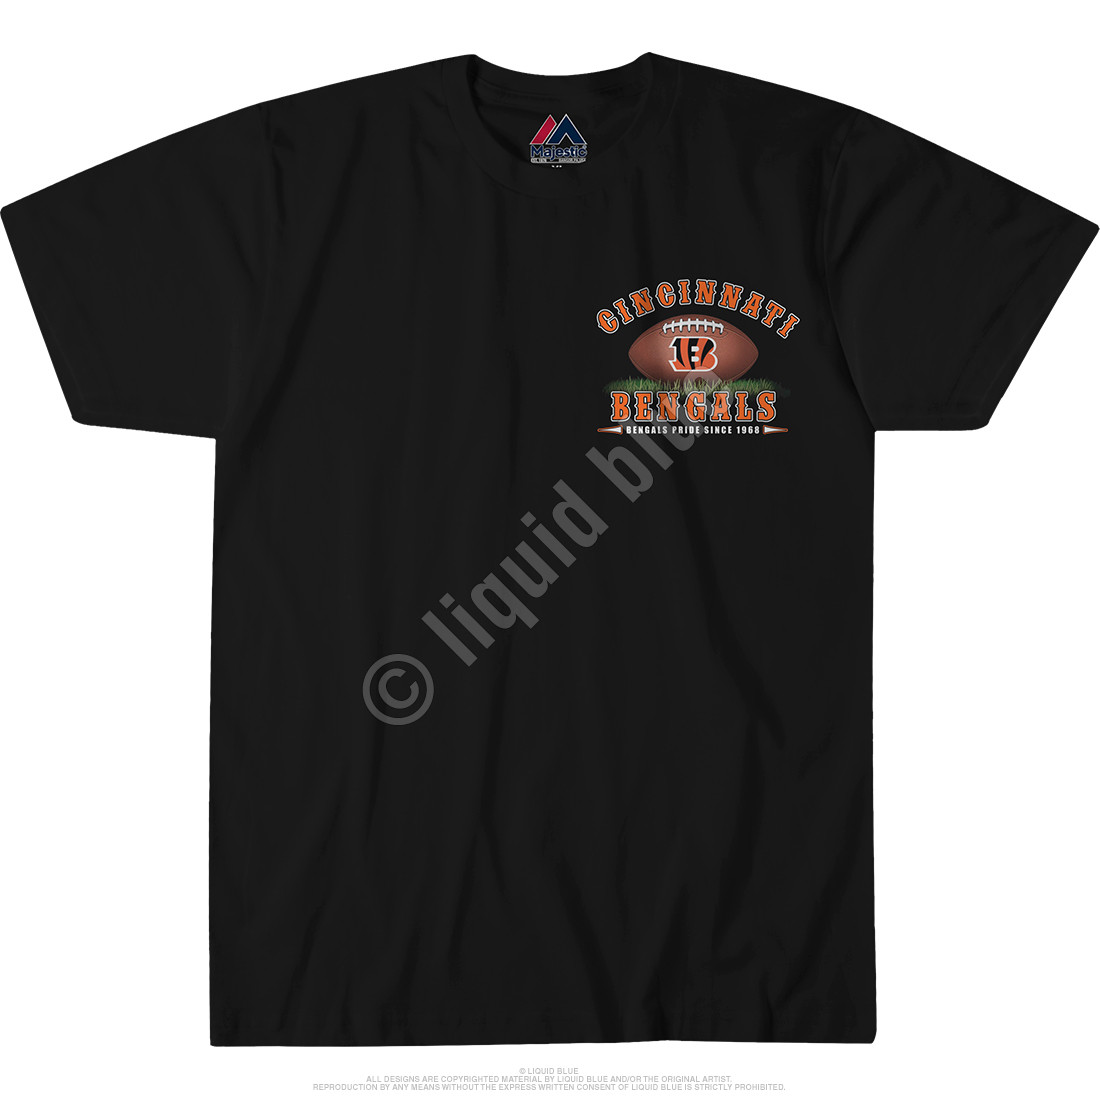 Cincinnati Bengals End Zone Black T-Shirt